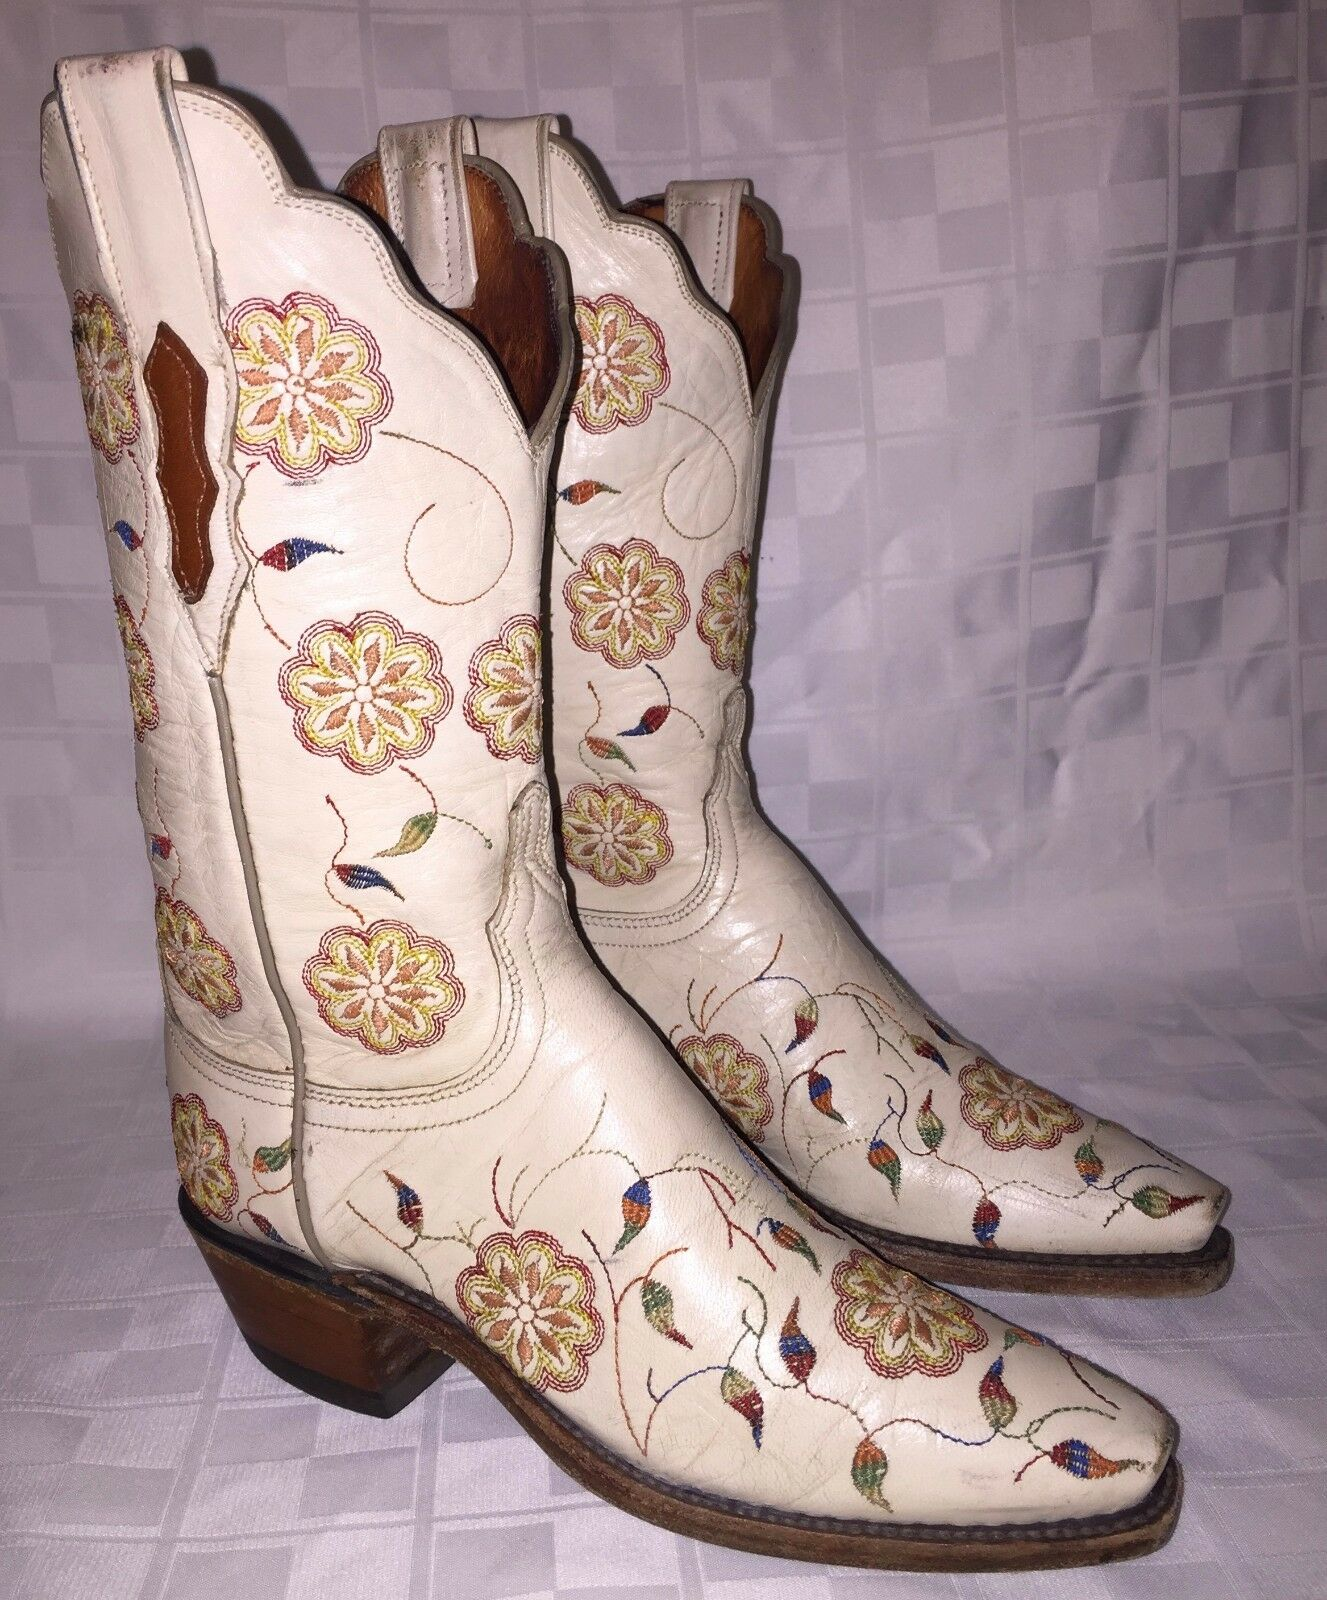 Donna 5 B LUCCHESE 1883 N4552 Cowgirl Cowboy Cream w/ Floral Embroidery Boots